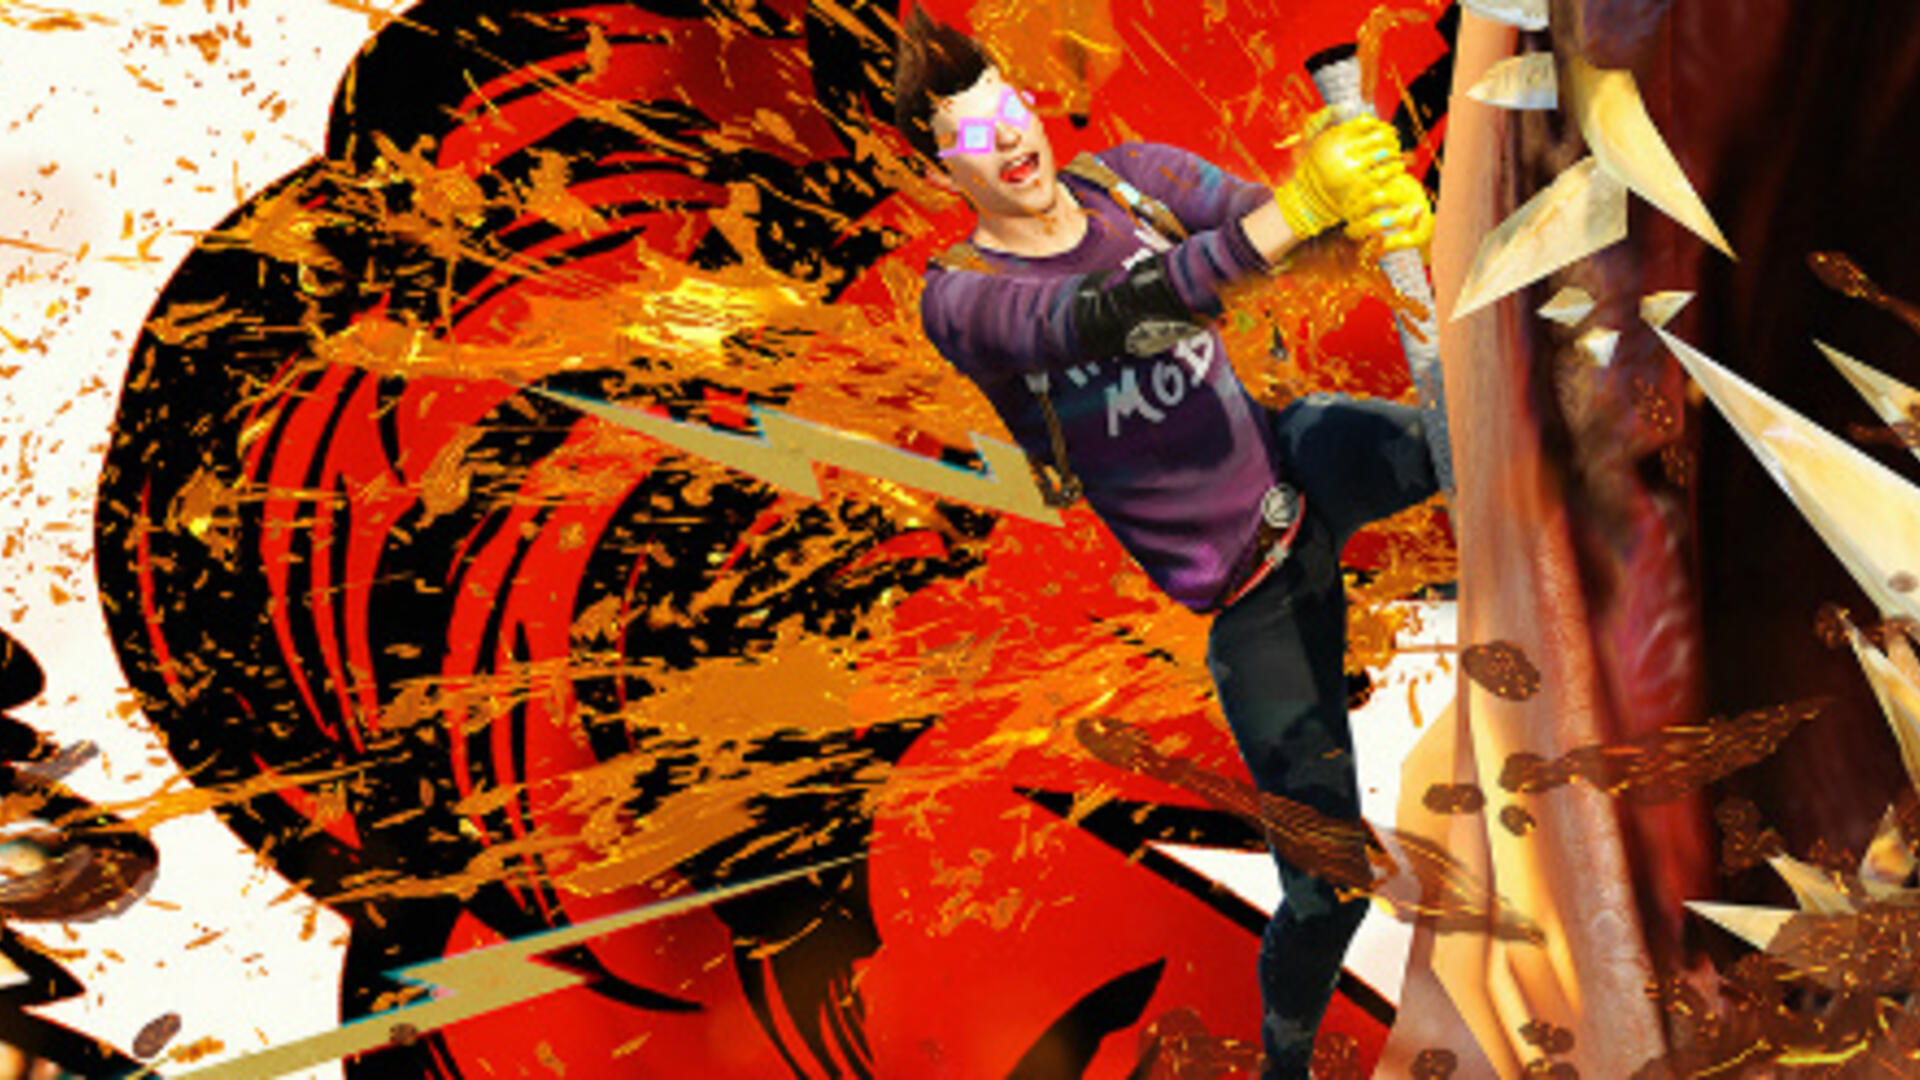 USstreamer: Tour Sunset Overdrive with Mike at 2:30pm PST/5:30pm EST